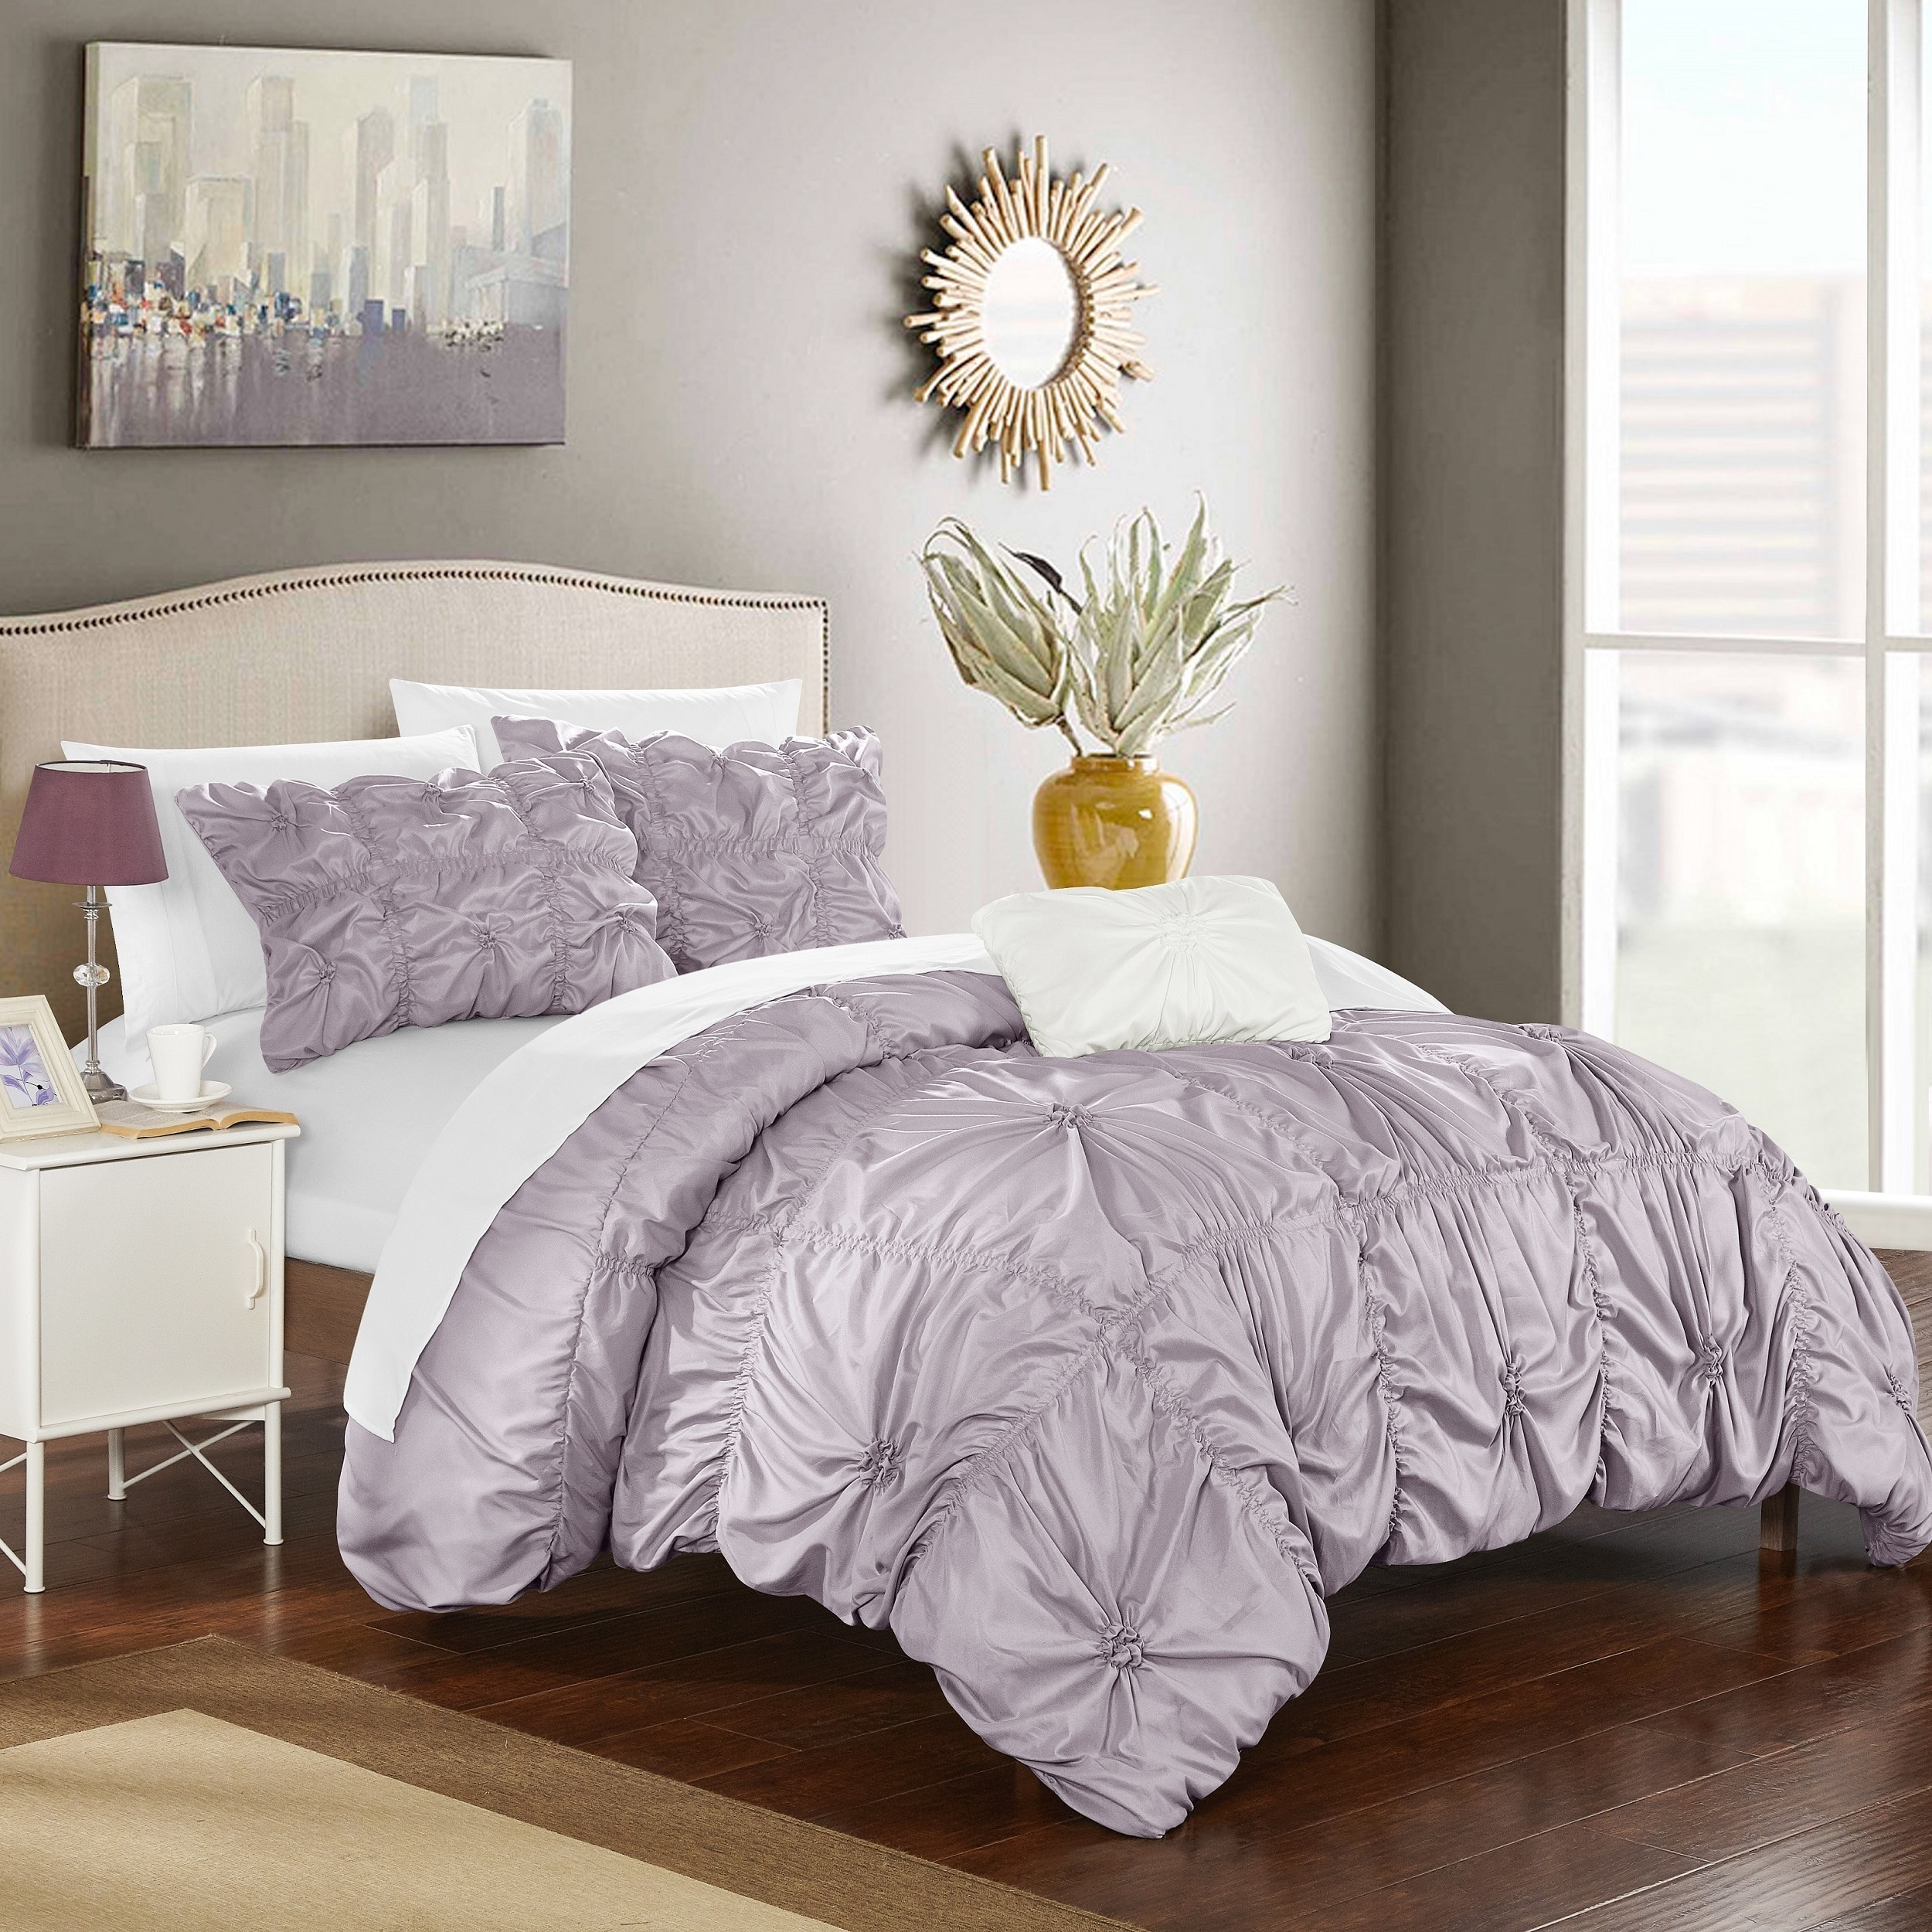 Shop chic home 4 piece benedict lavender duvet cover set on sale free shipping today overstock com 12776813